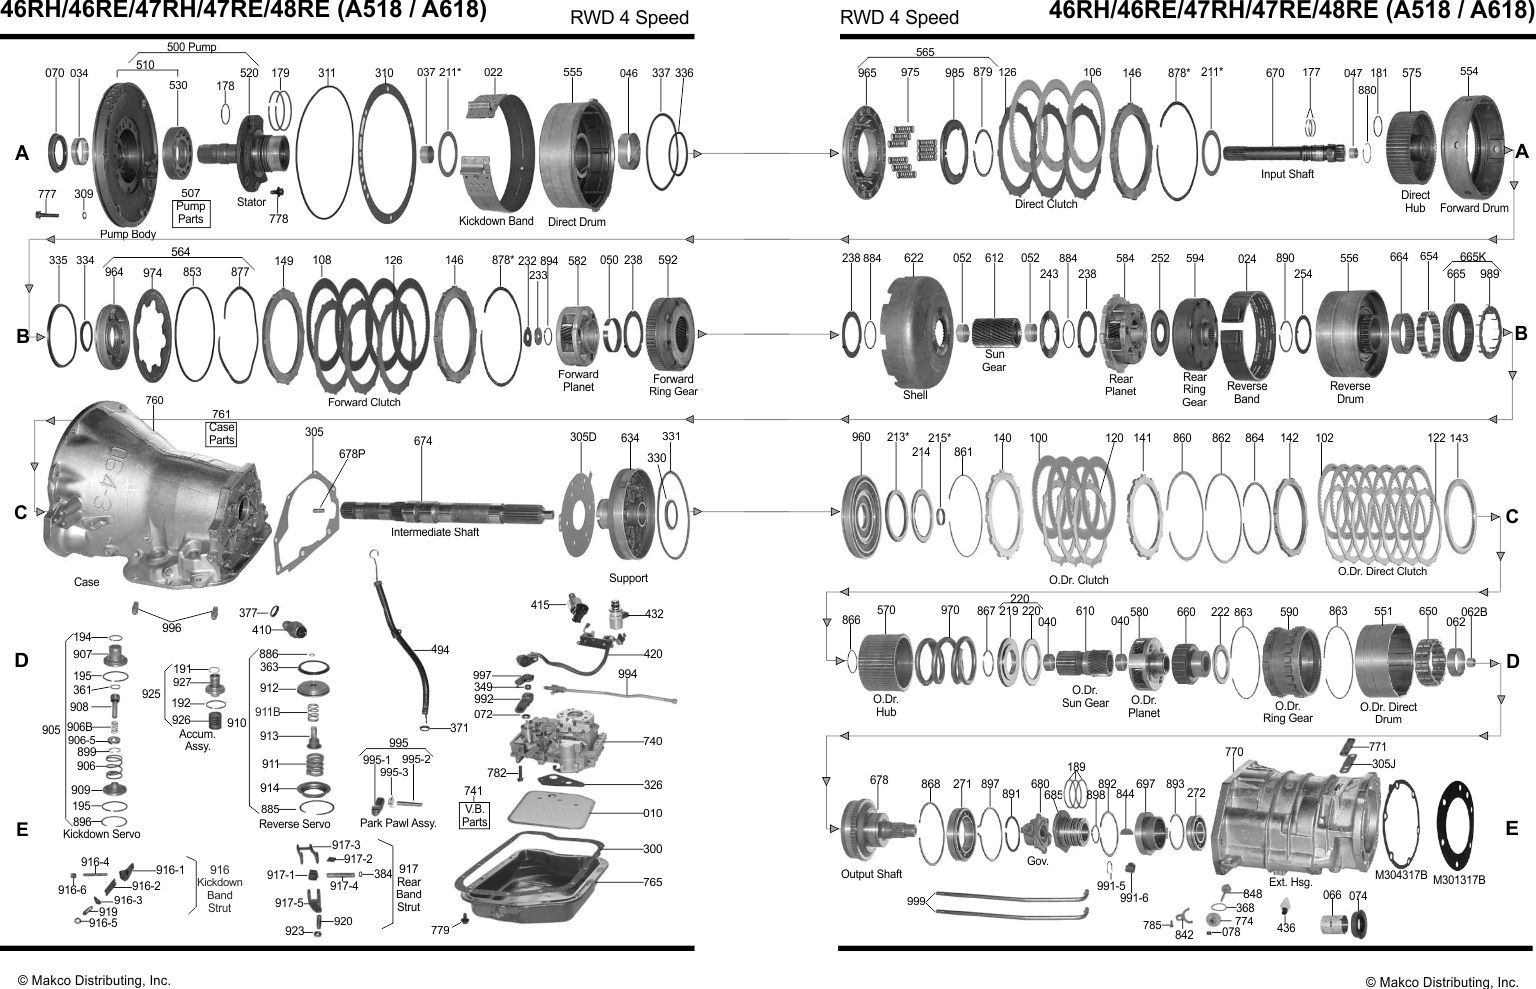 small resolution of 518 automatic overdrive diagram a518 46re a618 47re 48re 2001 dodge ram 1500 46re transmission diagram dodge 46re transmission diagram